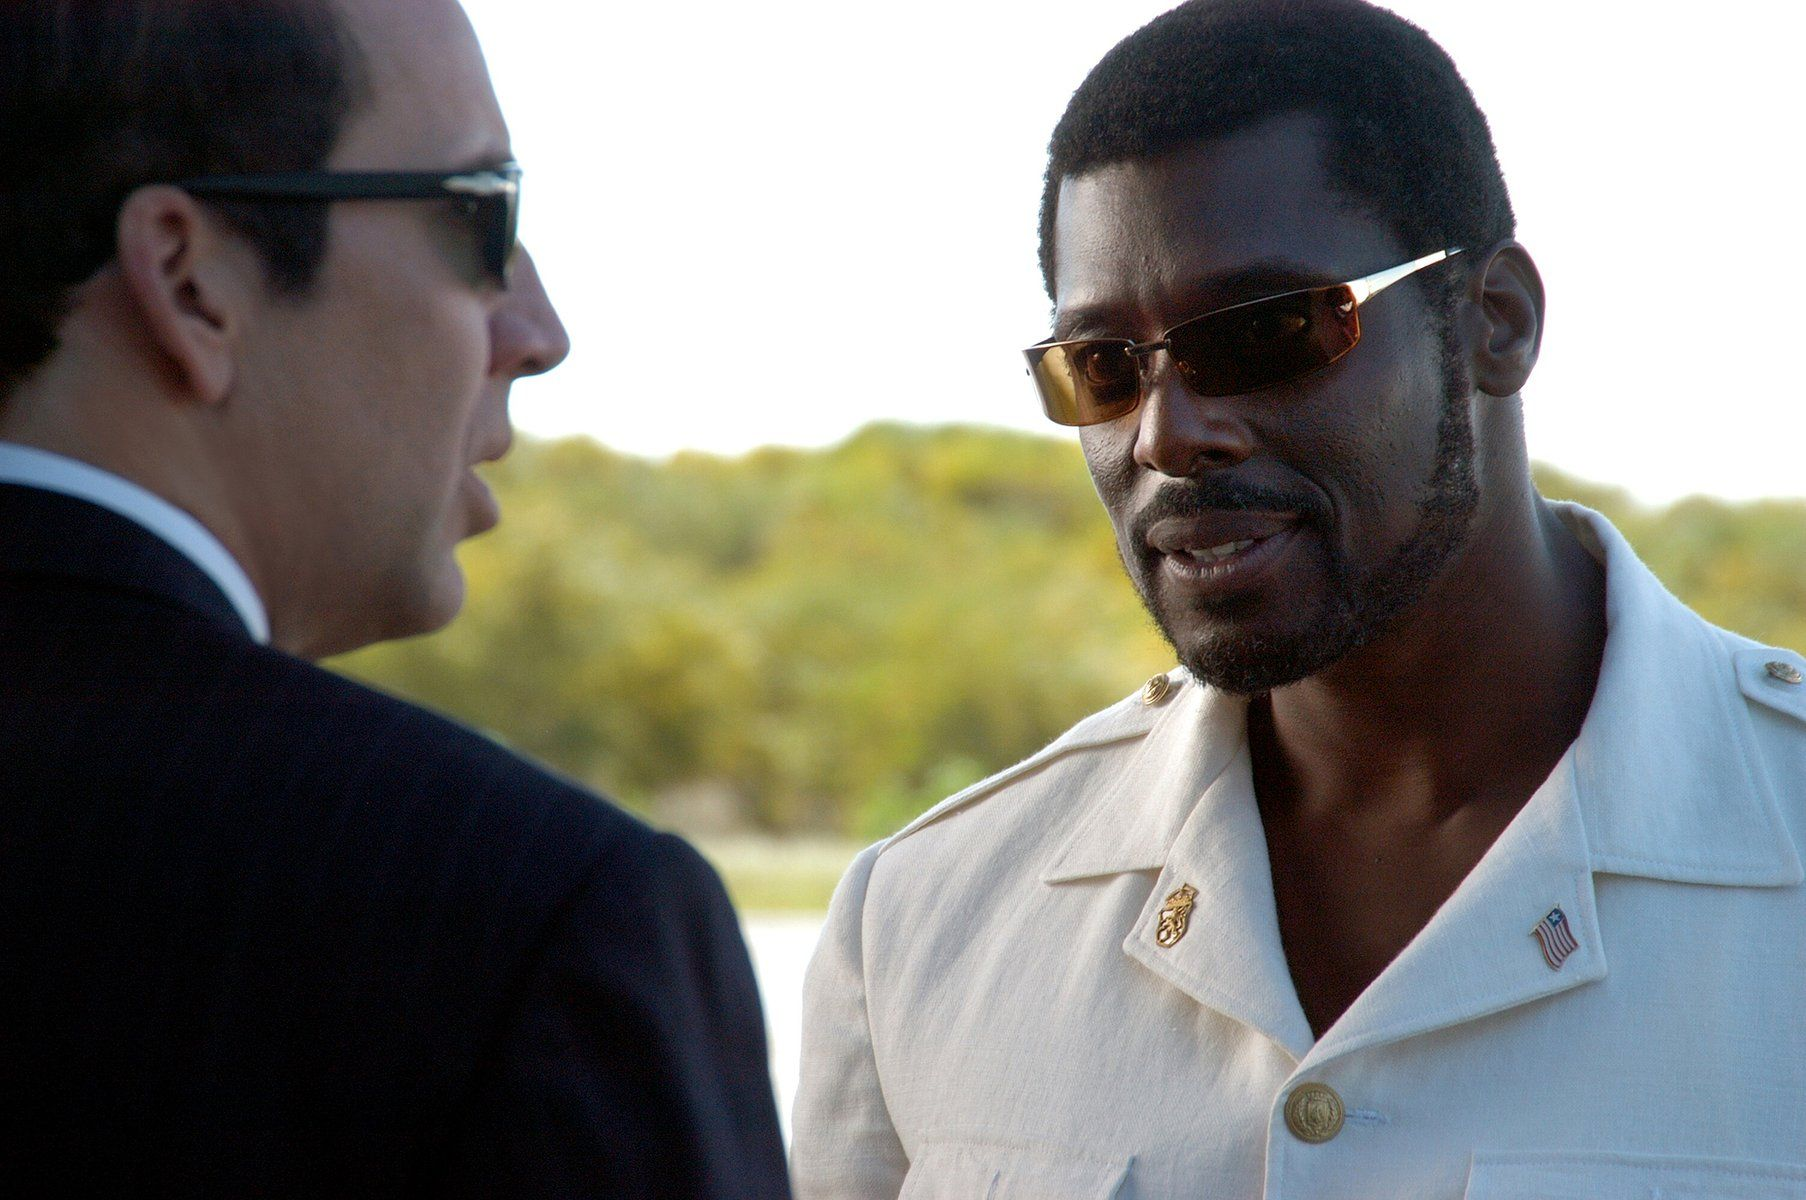 Eamonn Walker (born 1962) nudes (97 photo), Tits, Leaked, Instagram, cleavage 2020